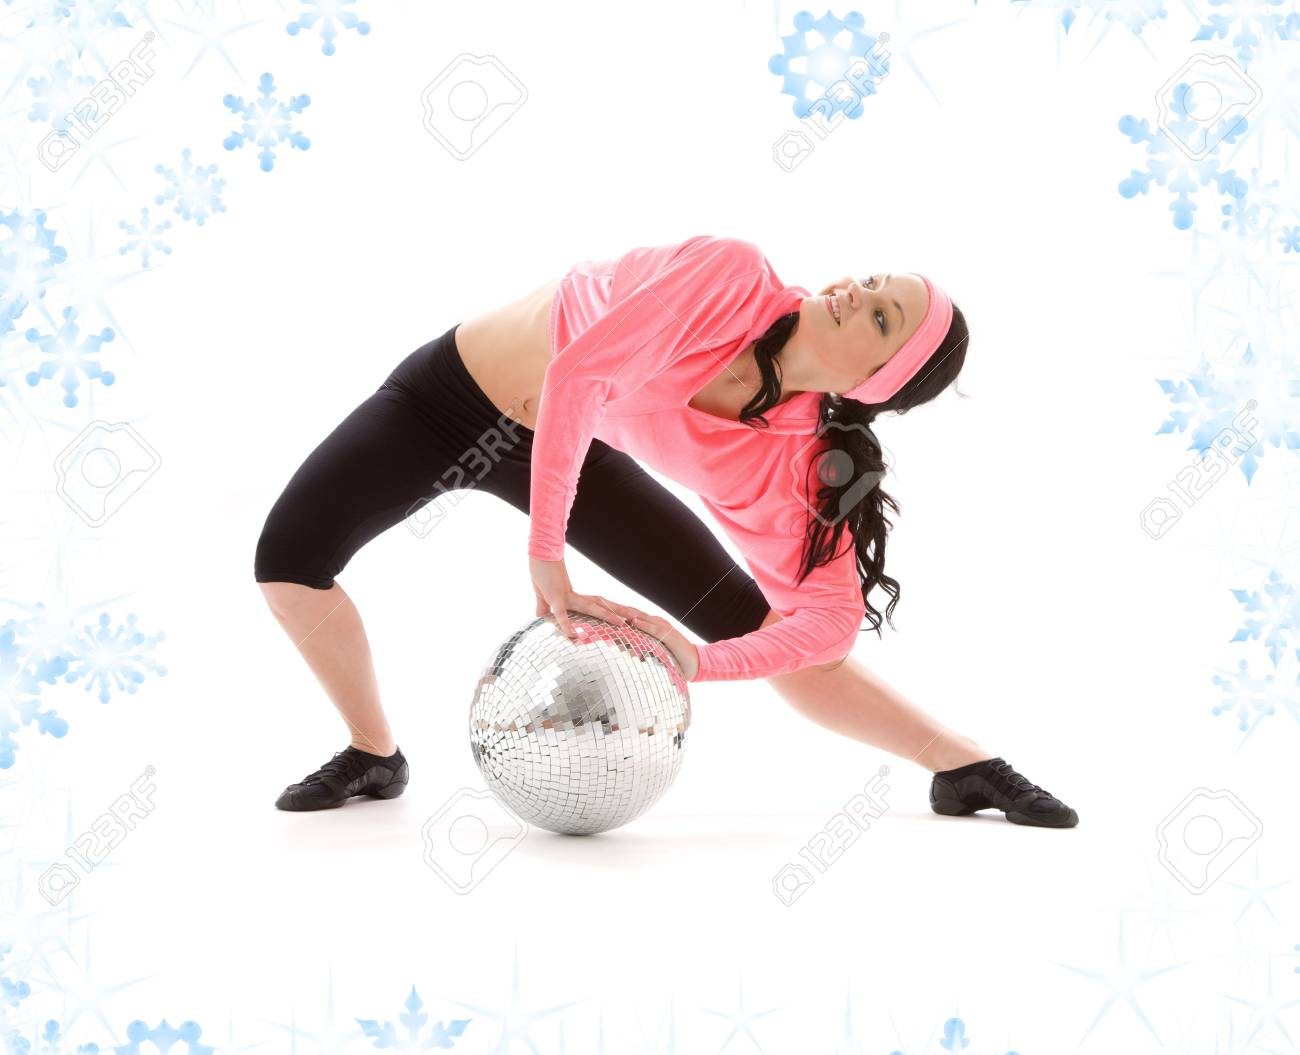 picture of dancer girl with glitterball and snowflakes Stock Photo - 3796769